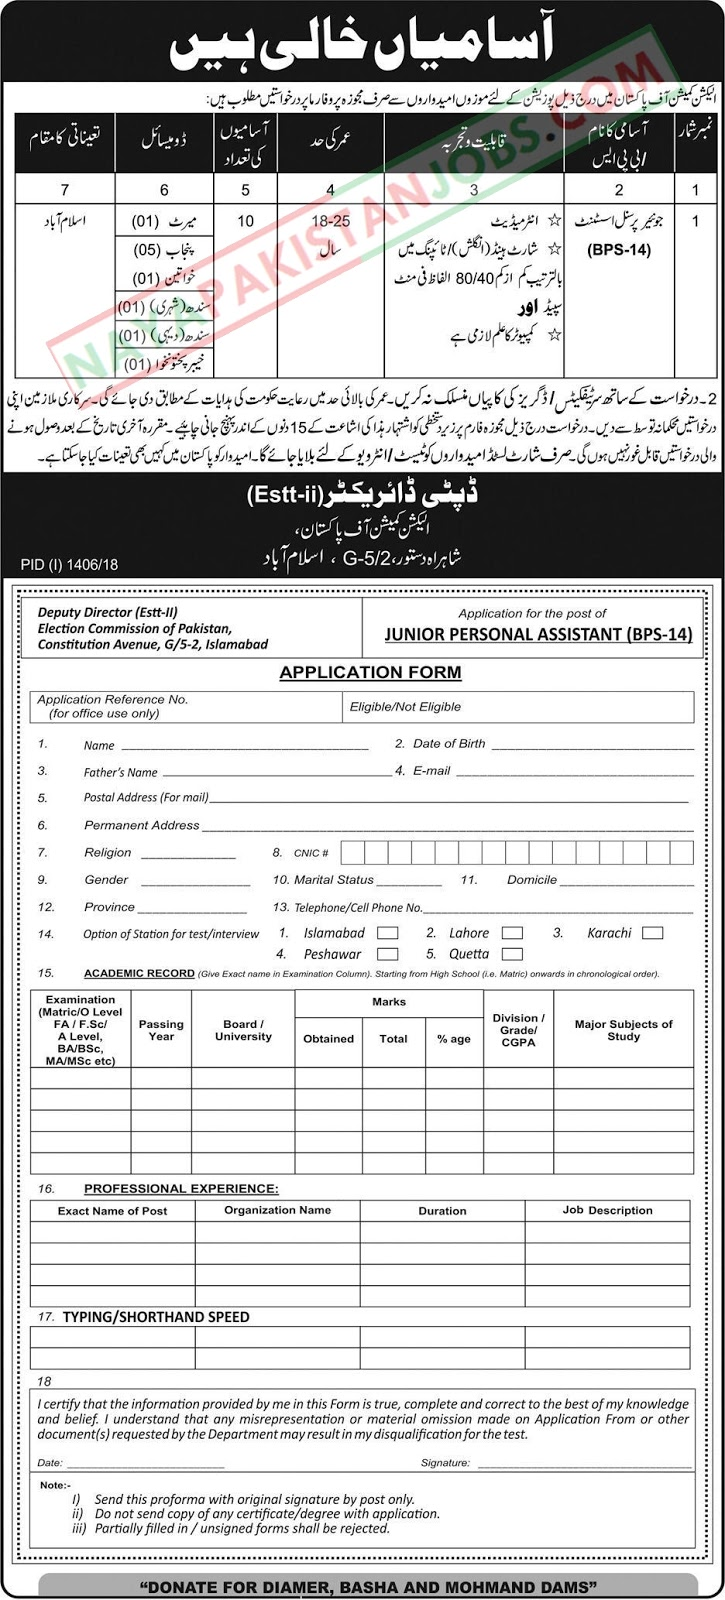 Latest Vacancies Announced in ecp.gov.pk Election Commission of Pakistan ECP Islamabad Application form Download for Junior Personal Assistant 27 September 2018 - Naya Pak Jobs